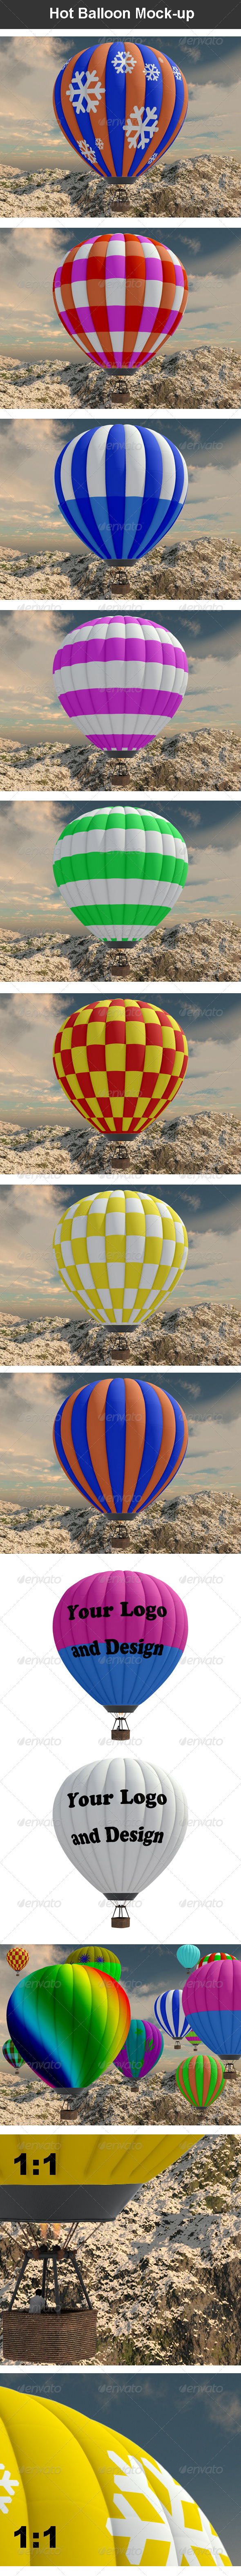 GraphicRiver Hot Balloon Mock-up 5135897